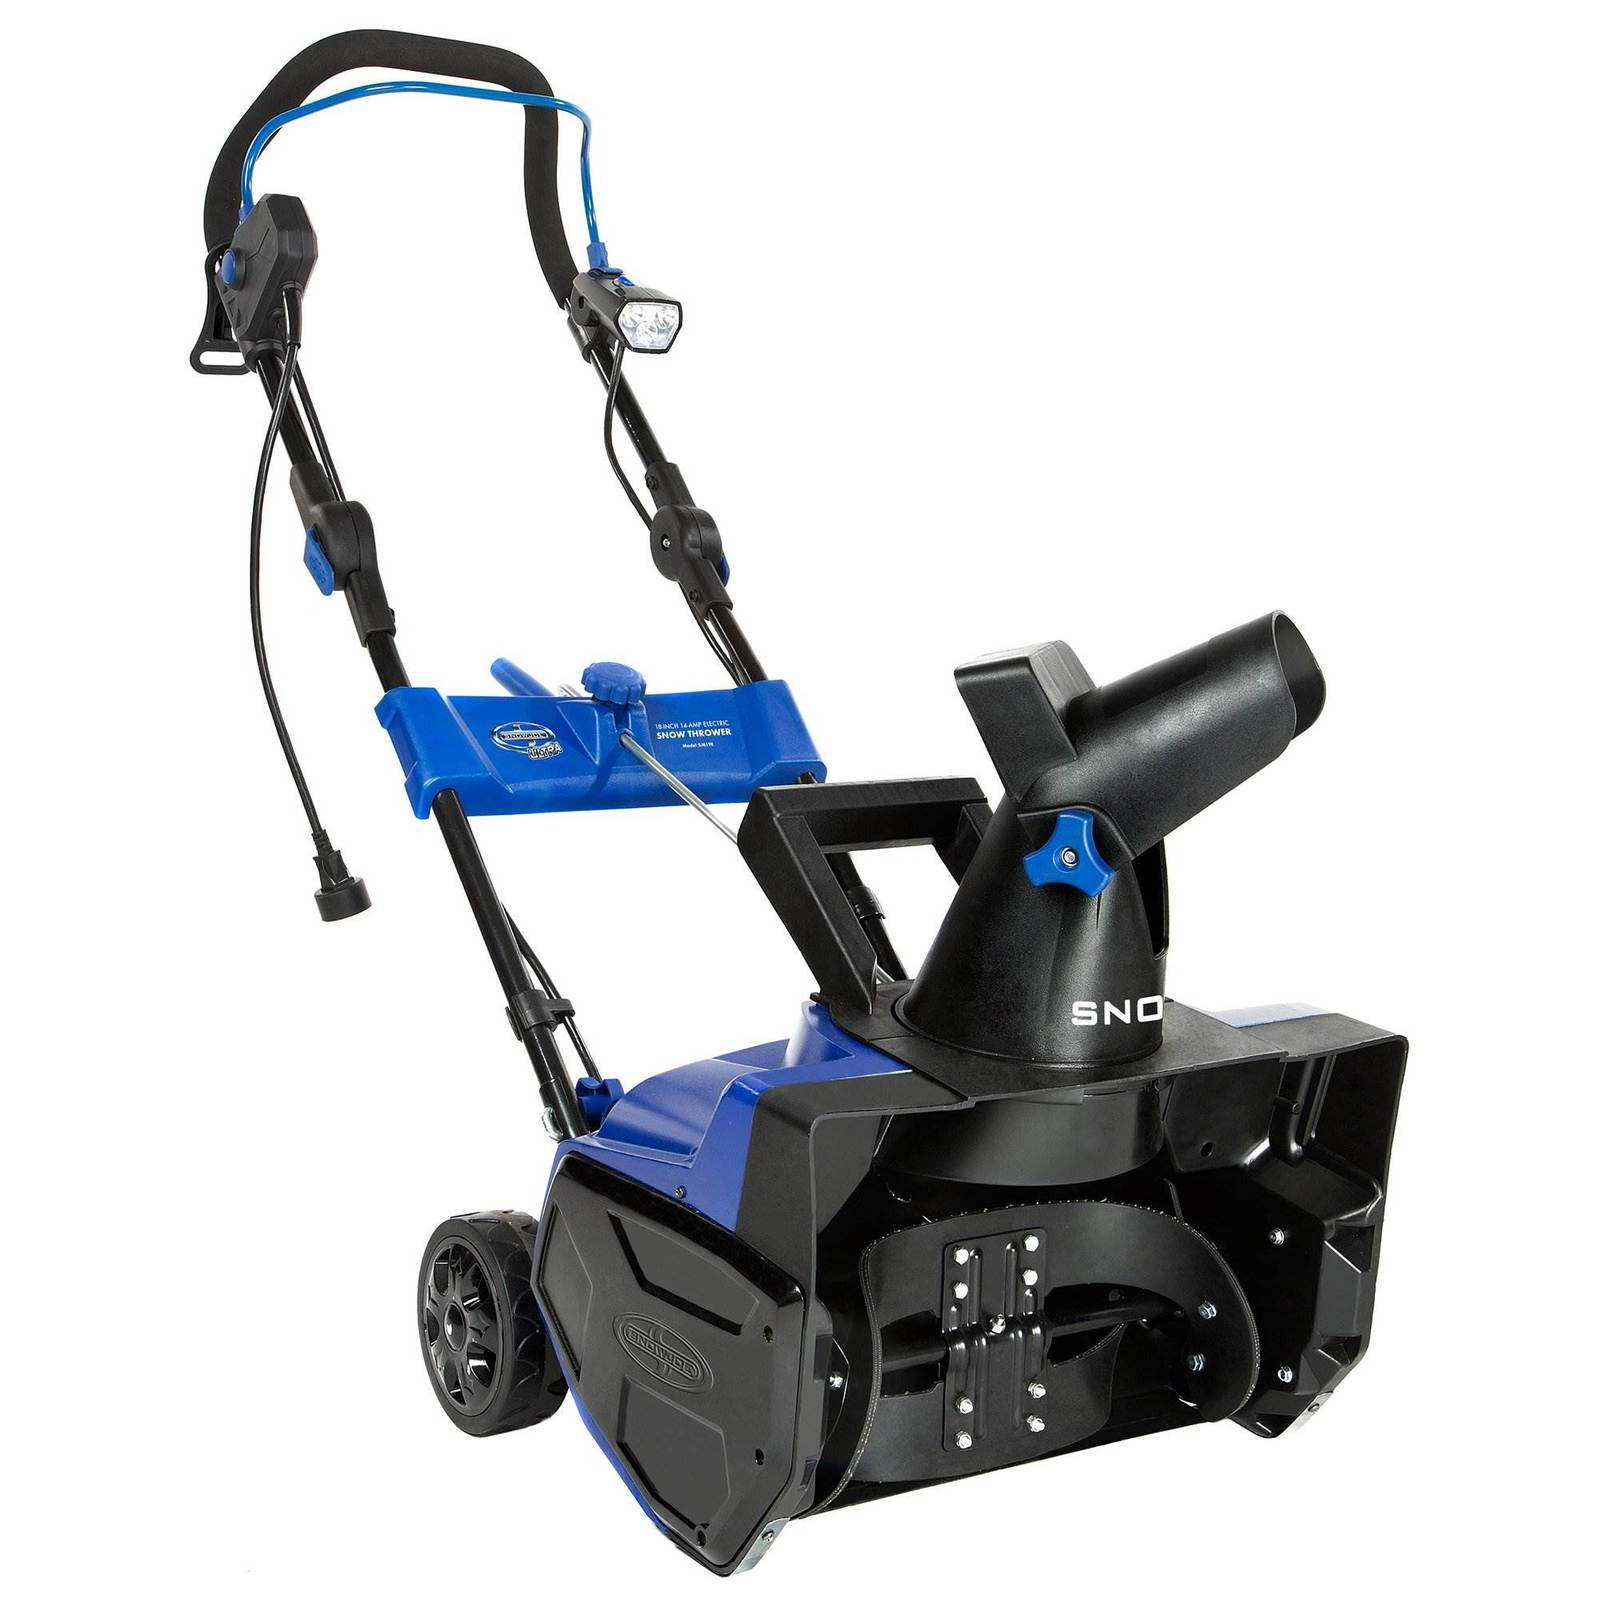 Primary image for Snow Joe SJ619E Electric Single Stage Snow Thrower, 18-Inch, 14.5 Amp Motor, LED